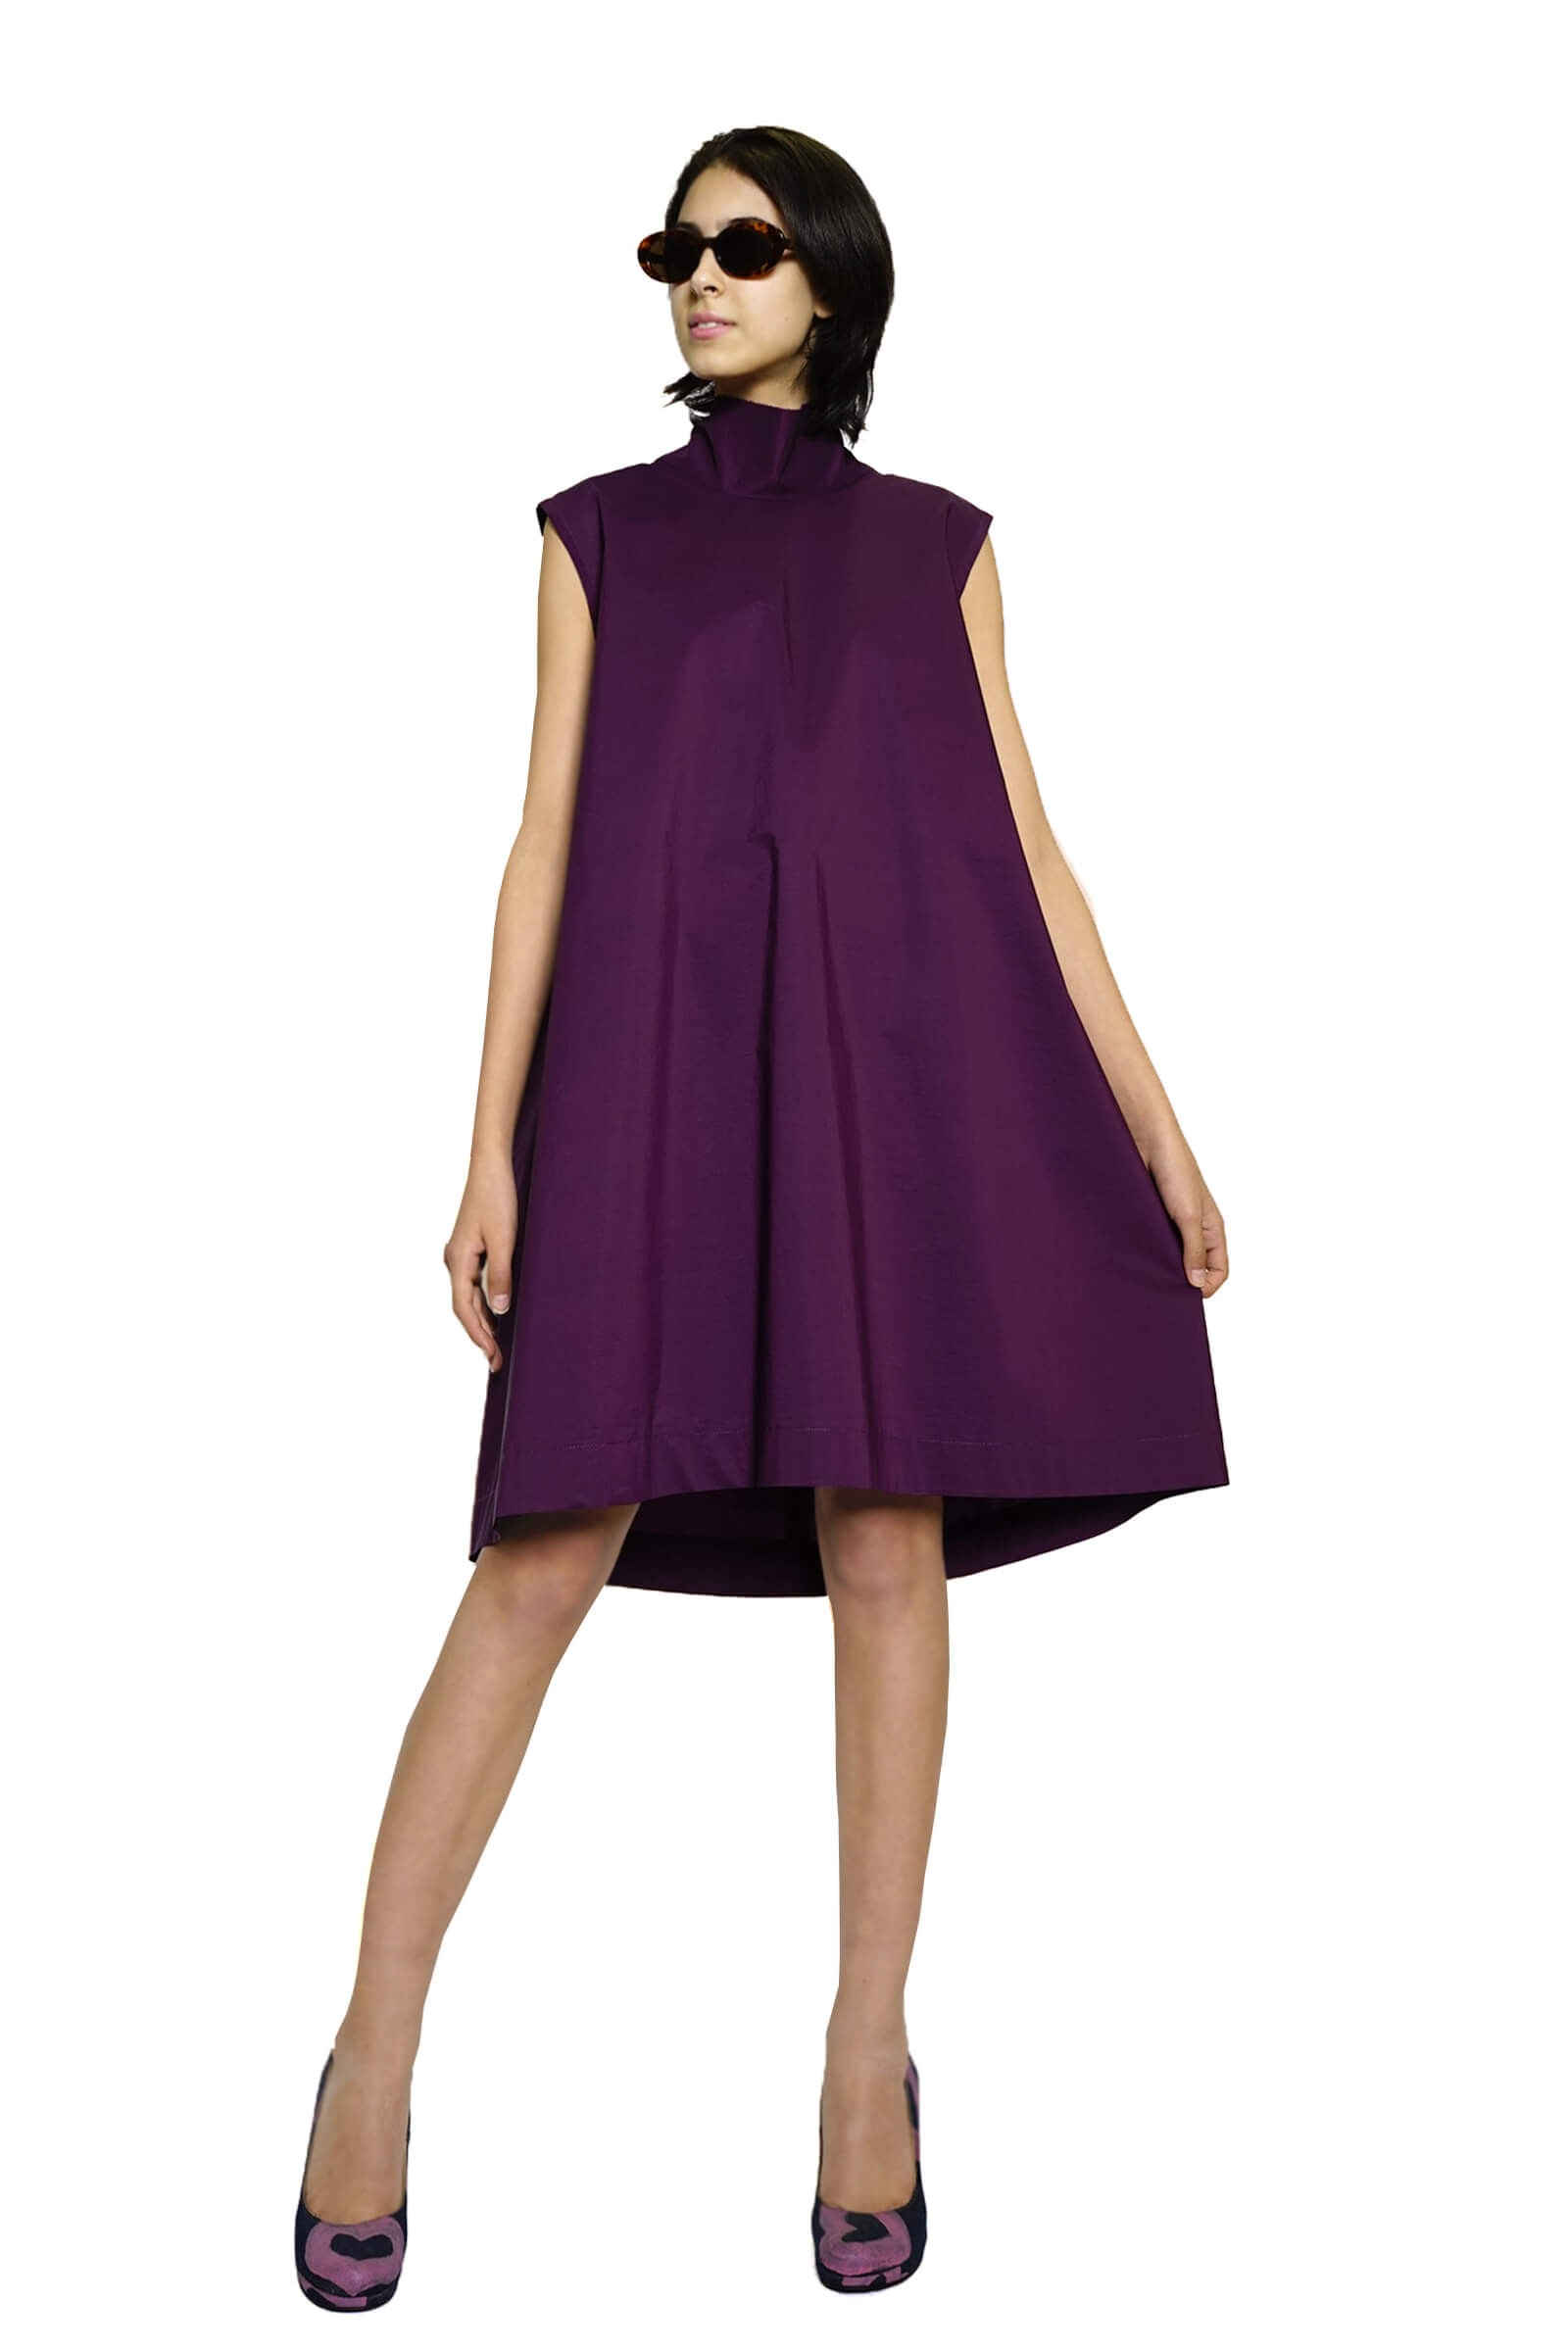 Flared purple dress with a...